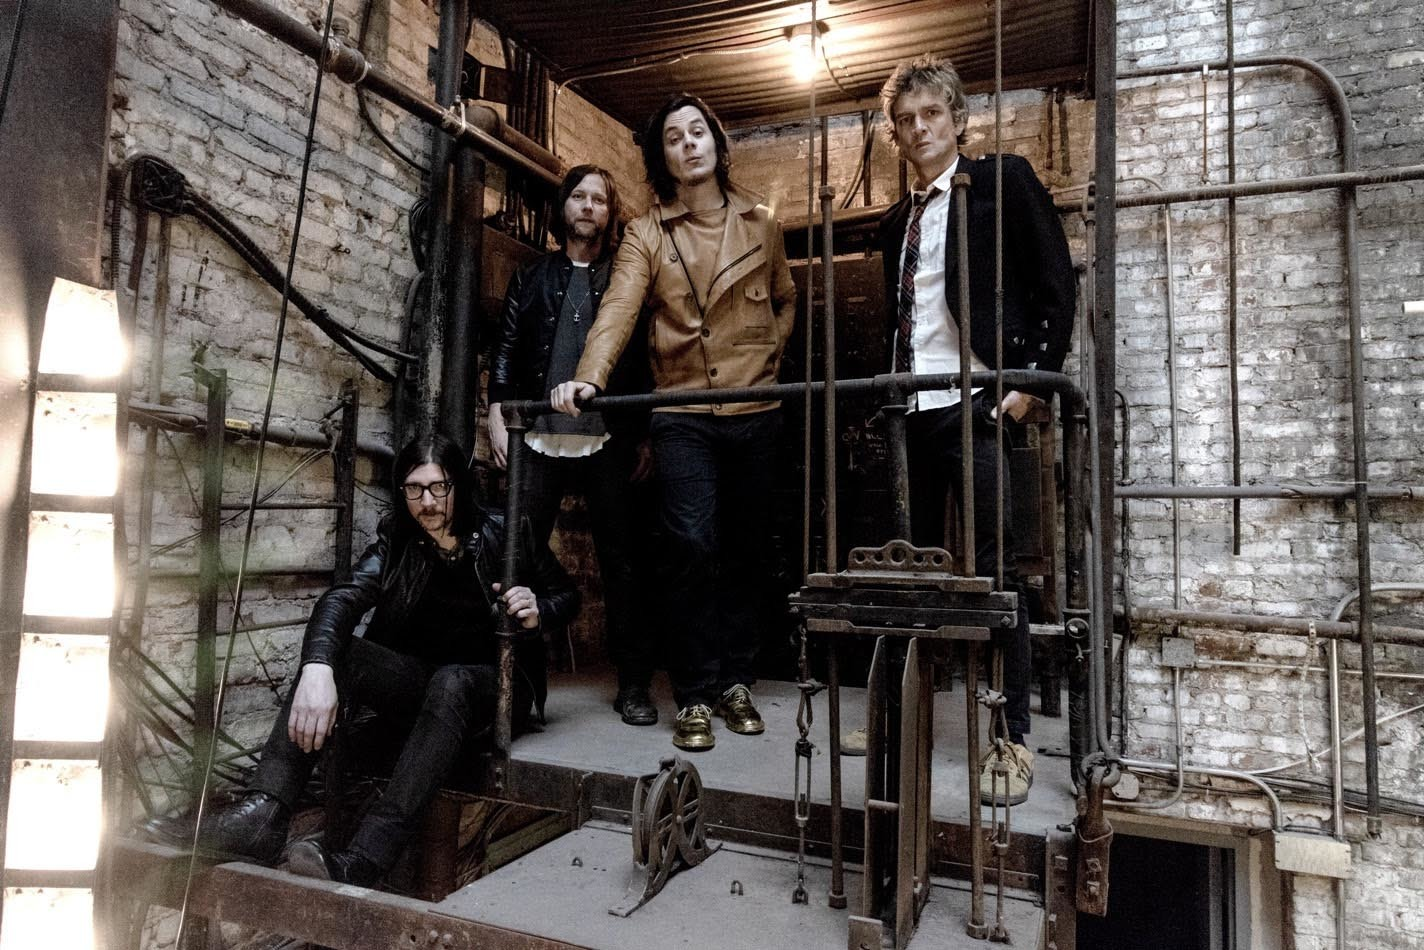 The Raconteurs confirm they've finished work on their new album